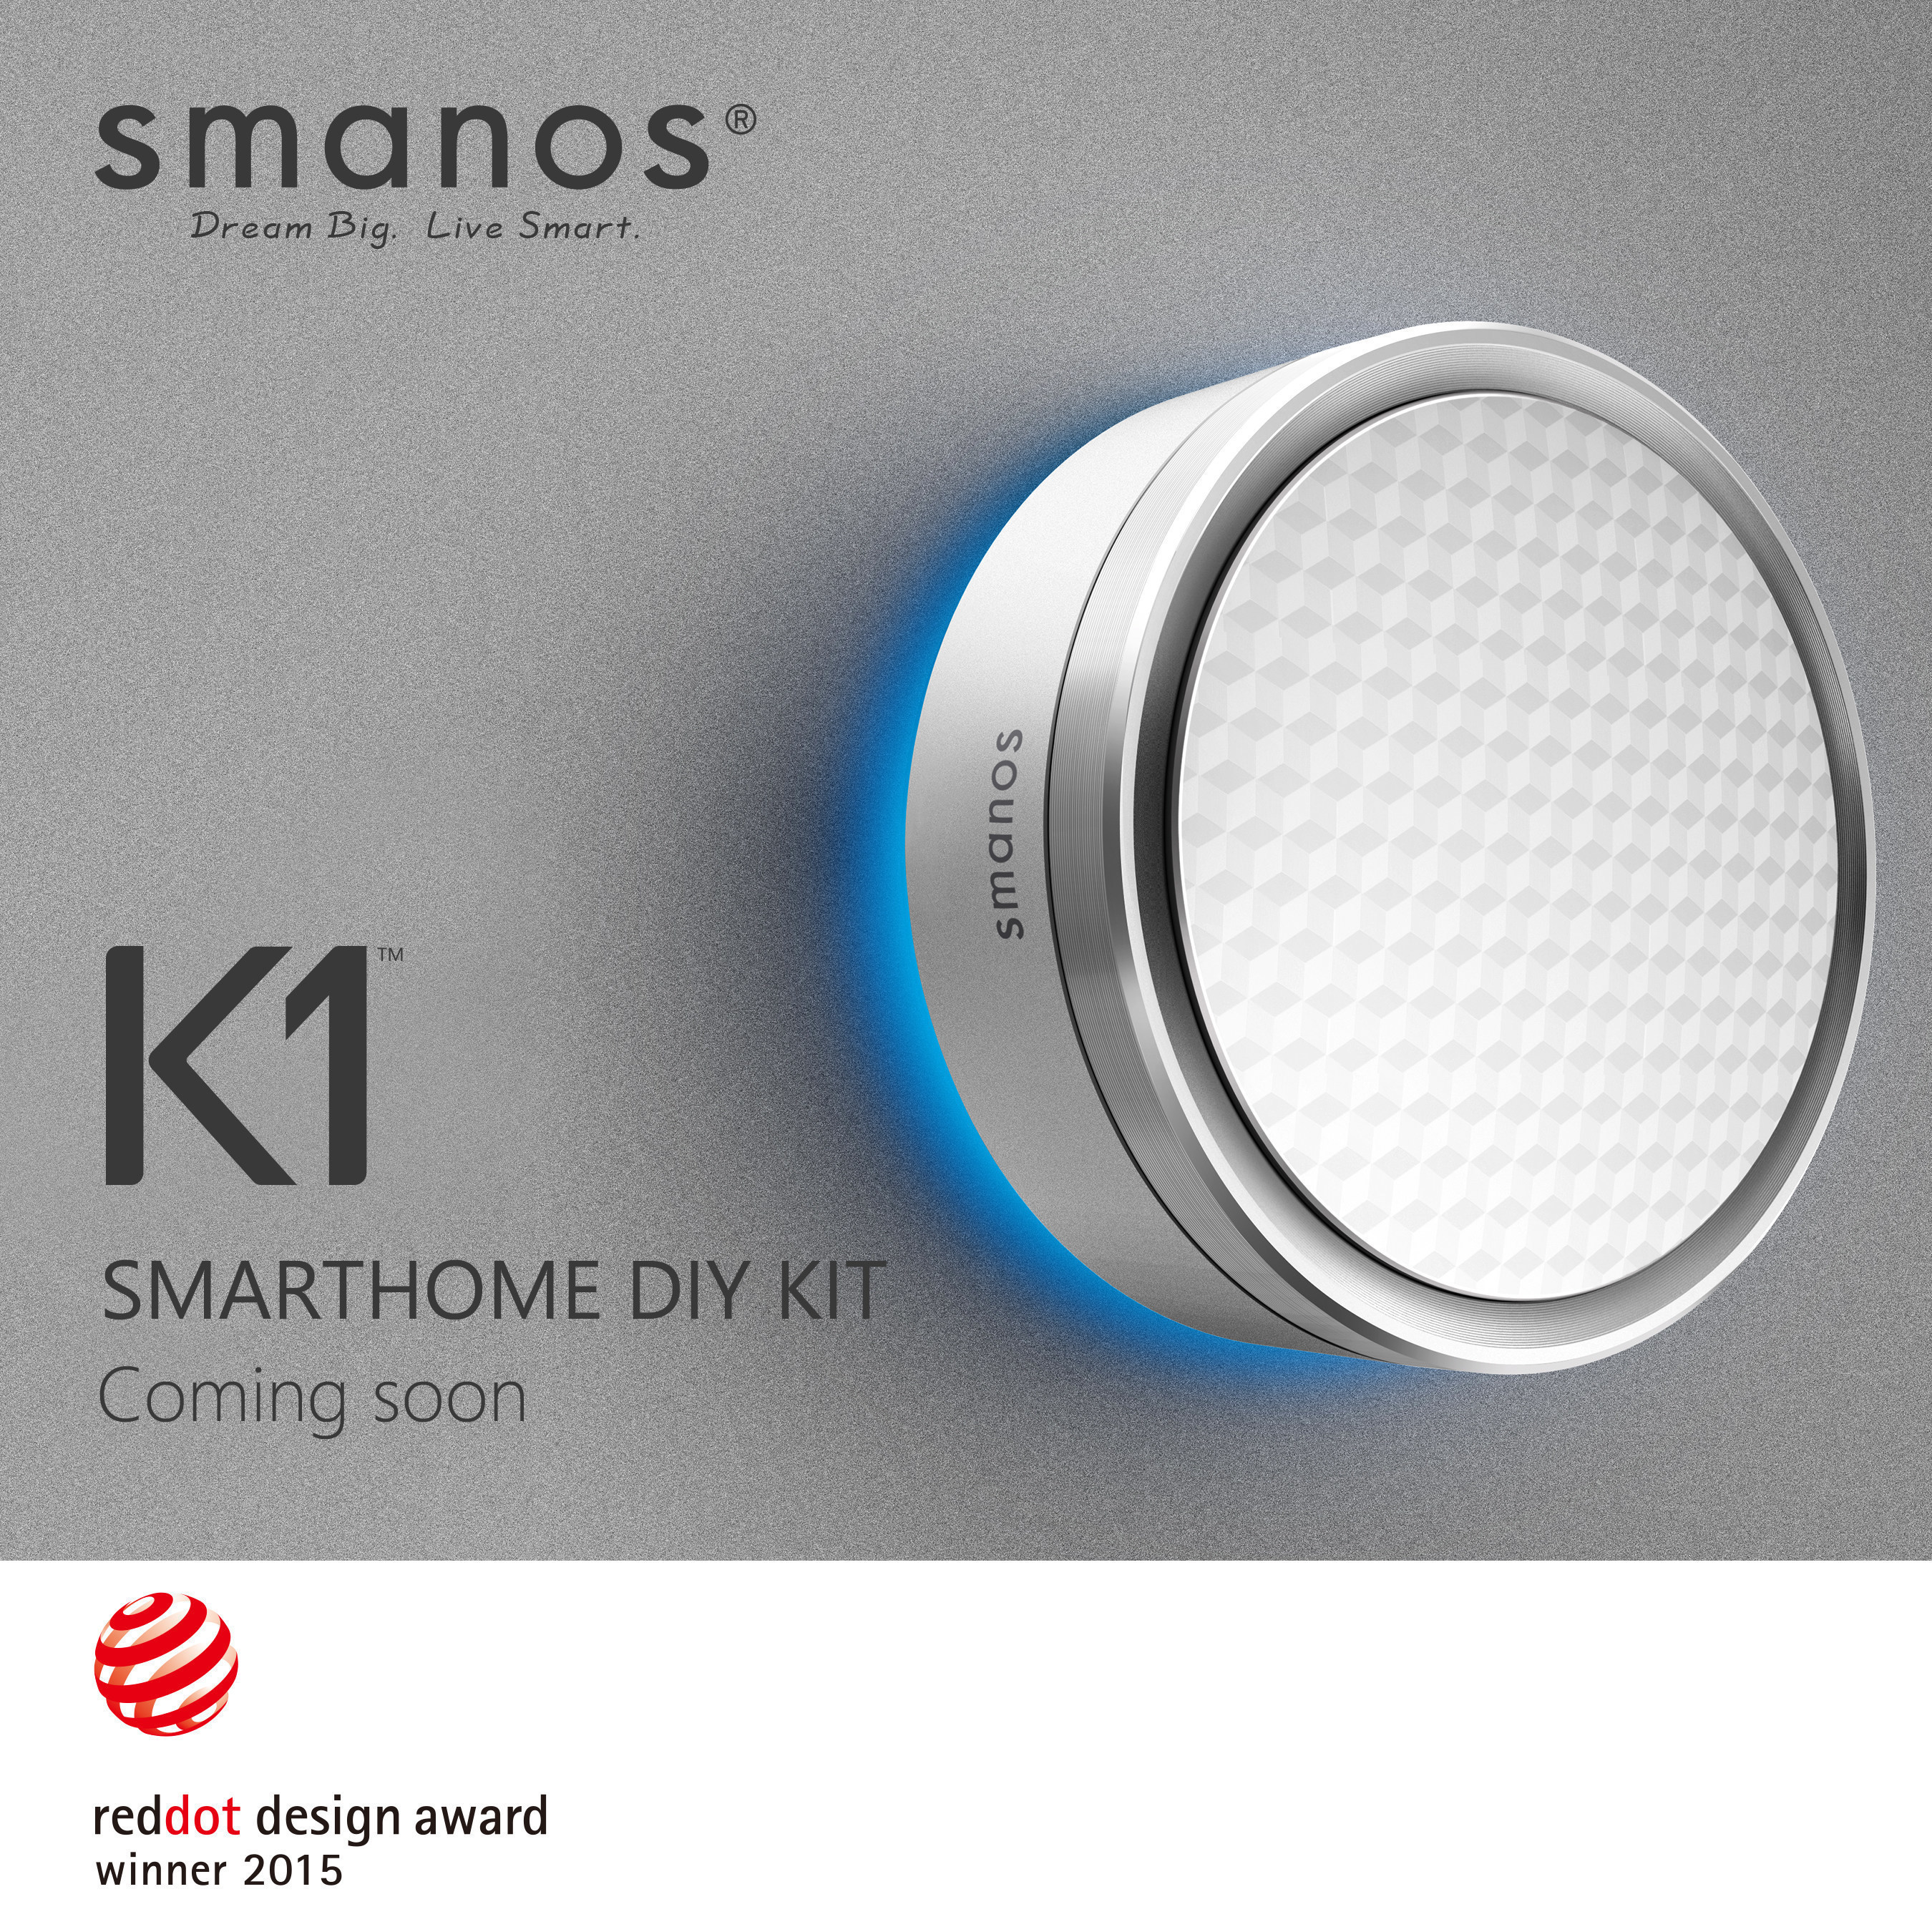 Smart Home Guru smanos Wins Red Dot Award 2015 with K1 SmartHome DIY Kit